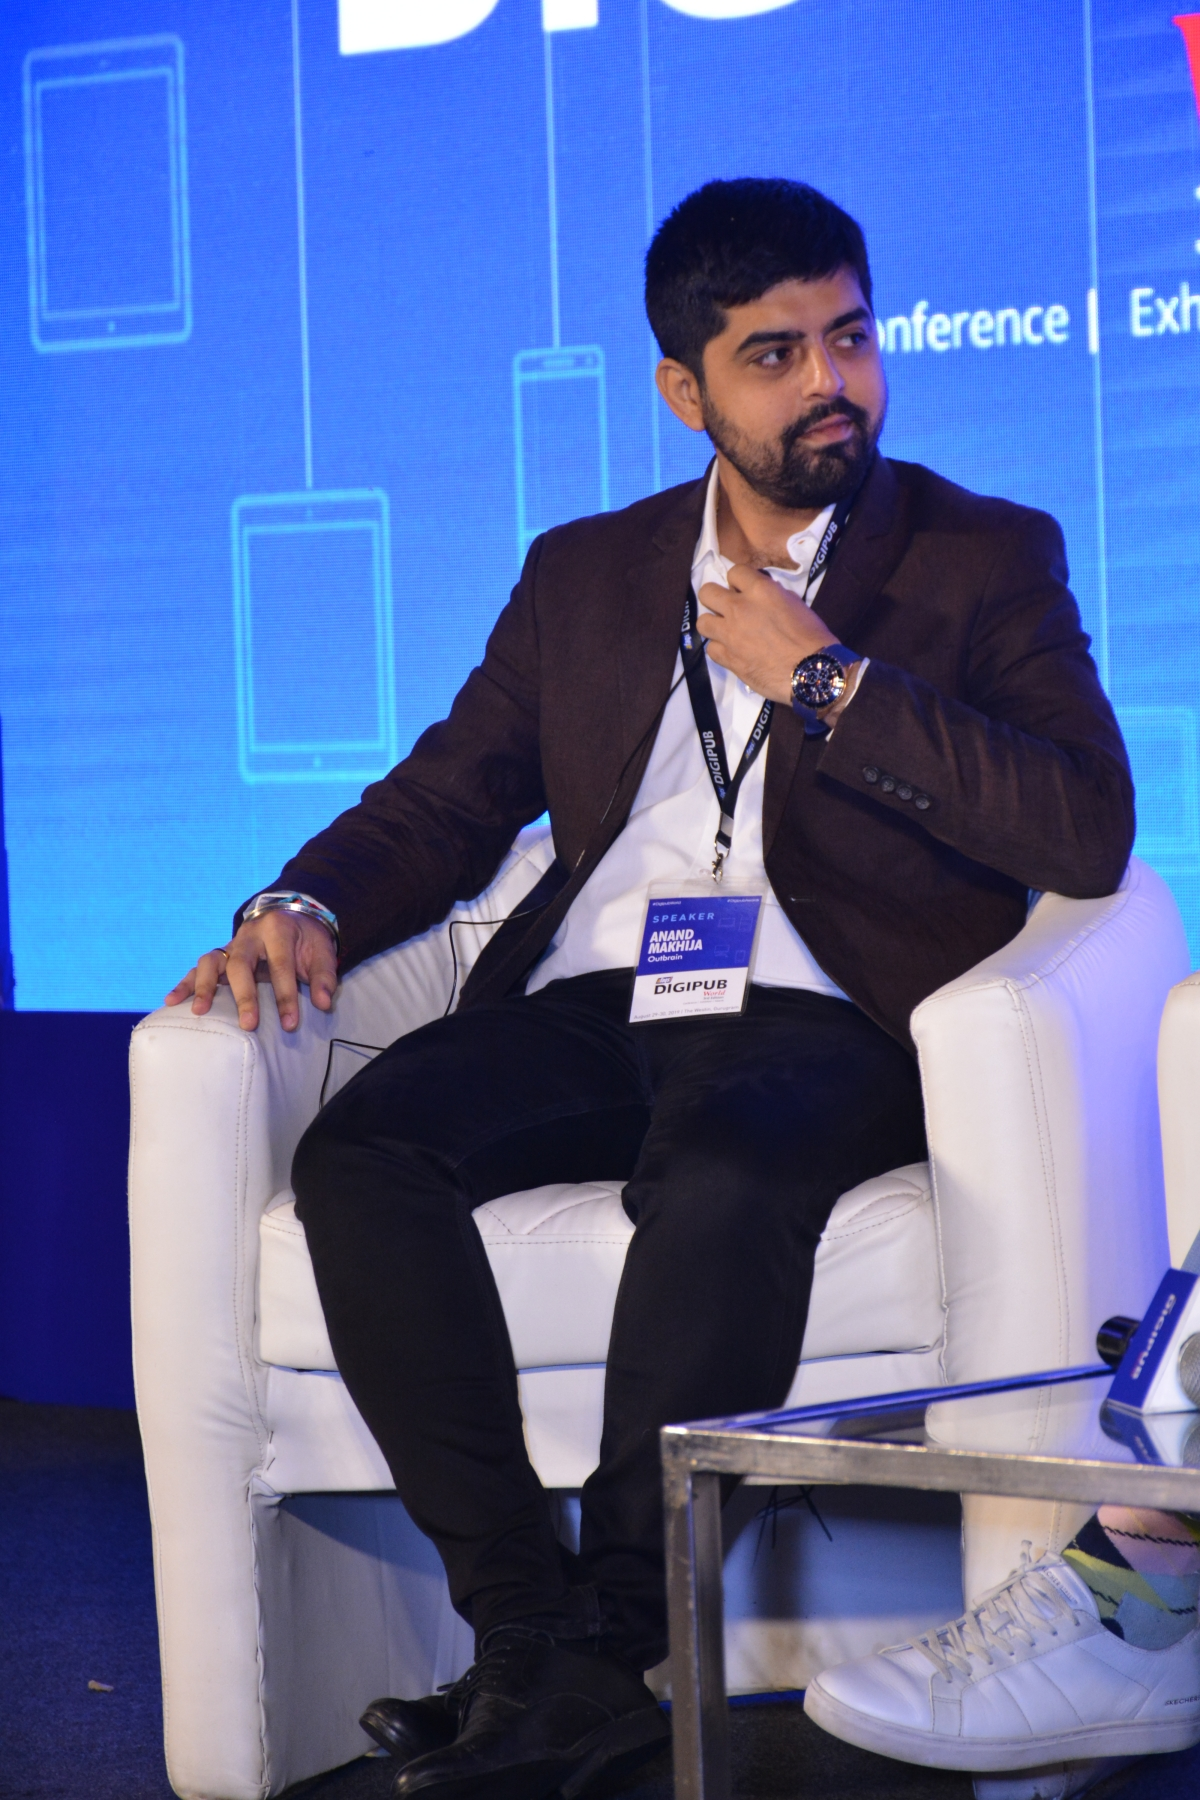 Anand Makhija - Director Business Development - Outbrain